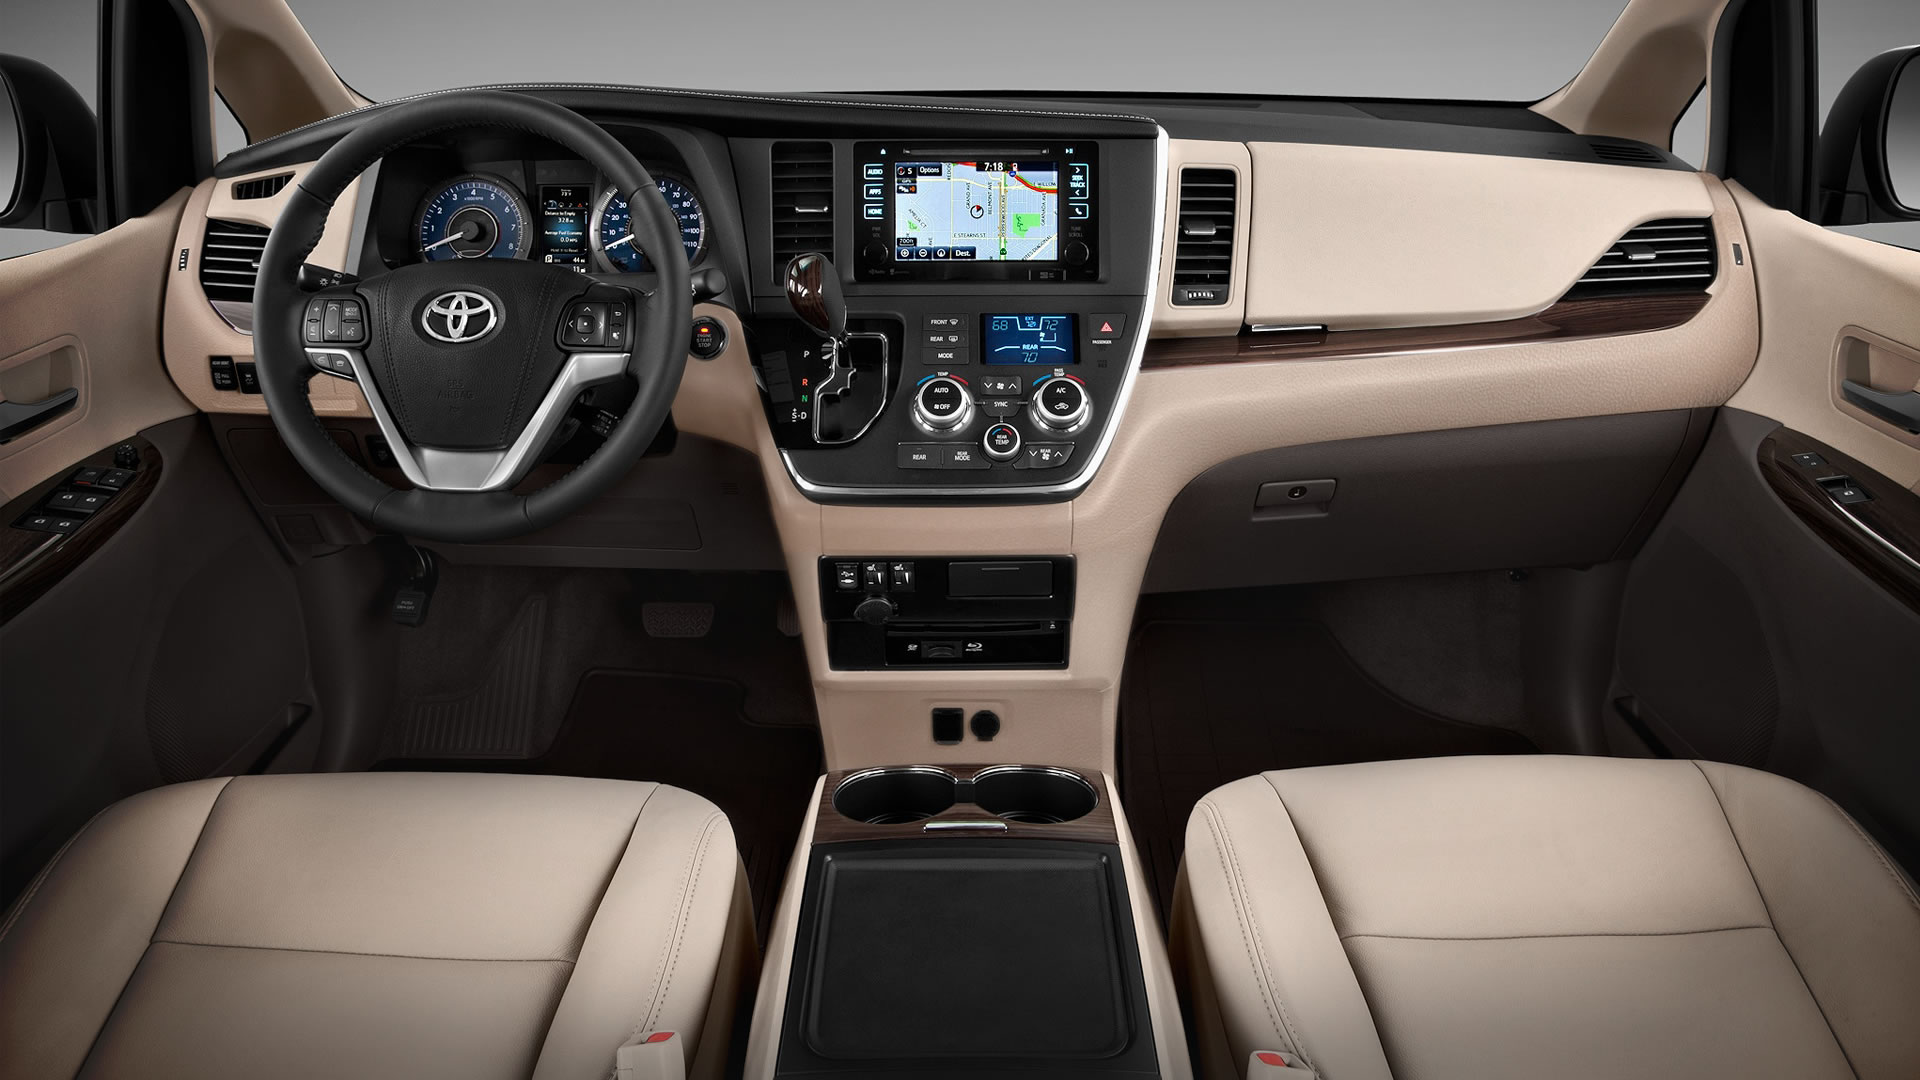 2015 Toyota Sienna Interior Ideas